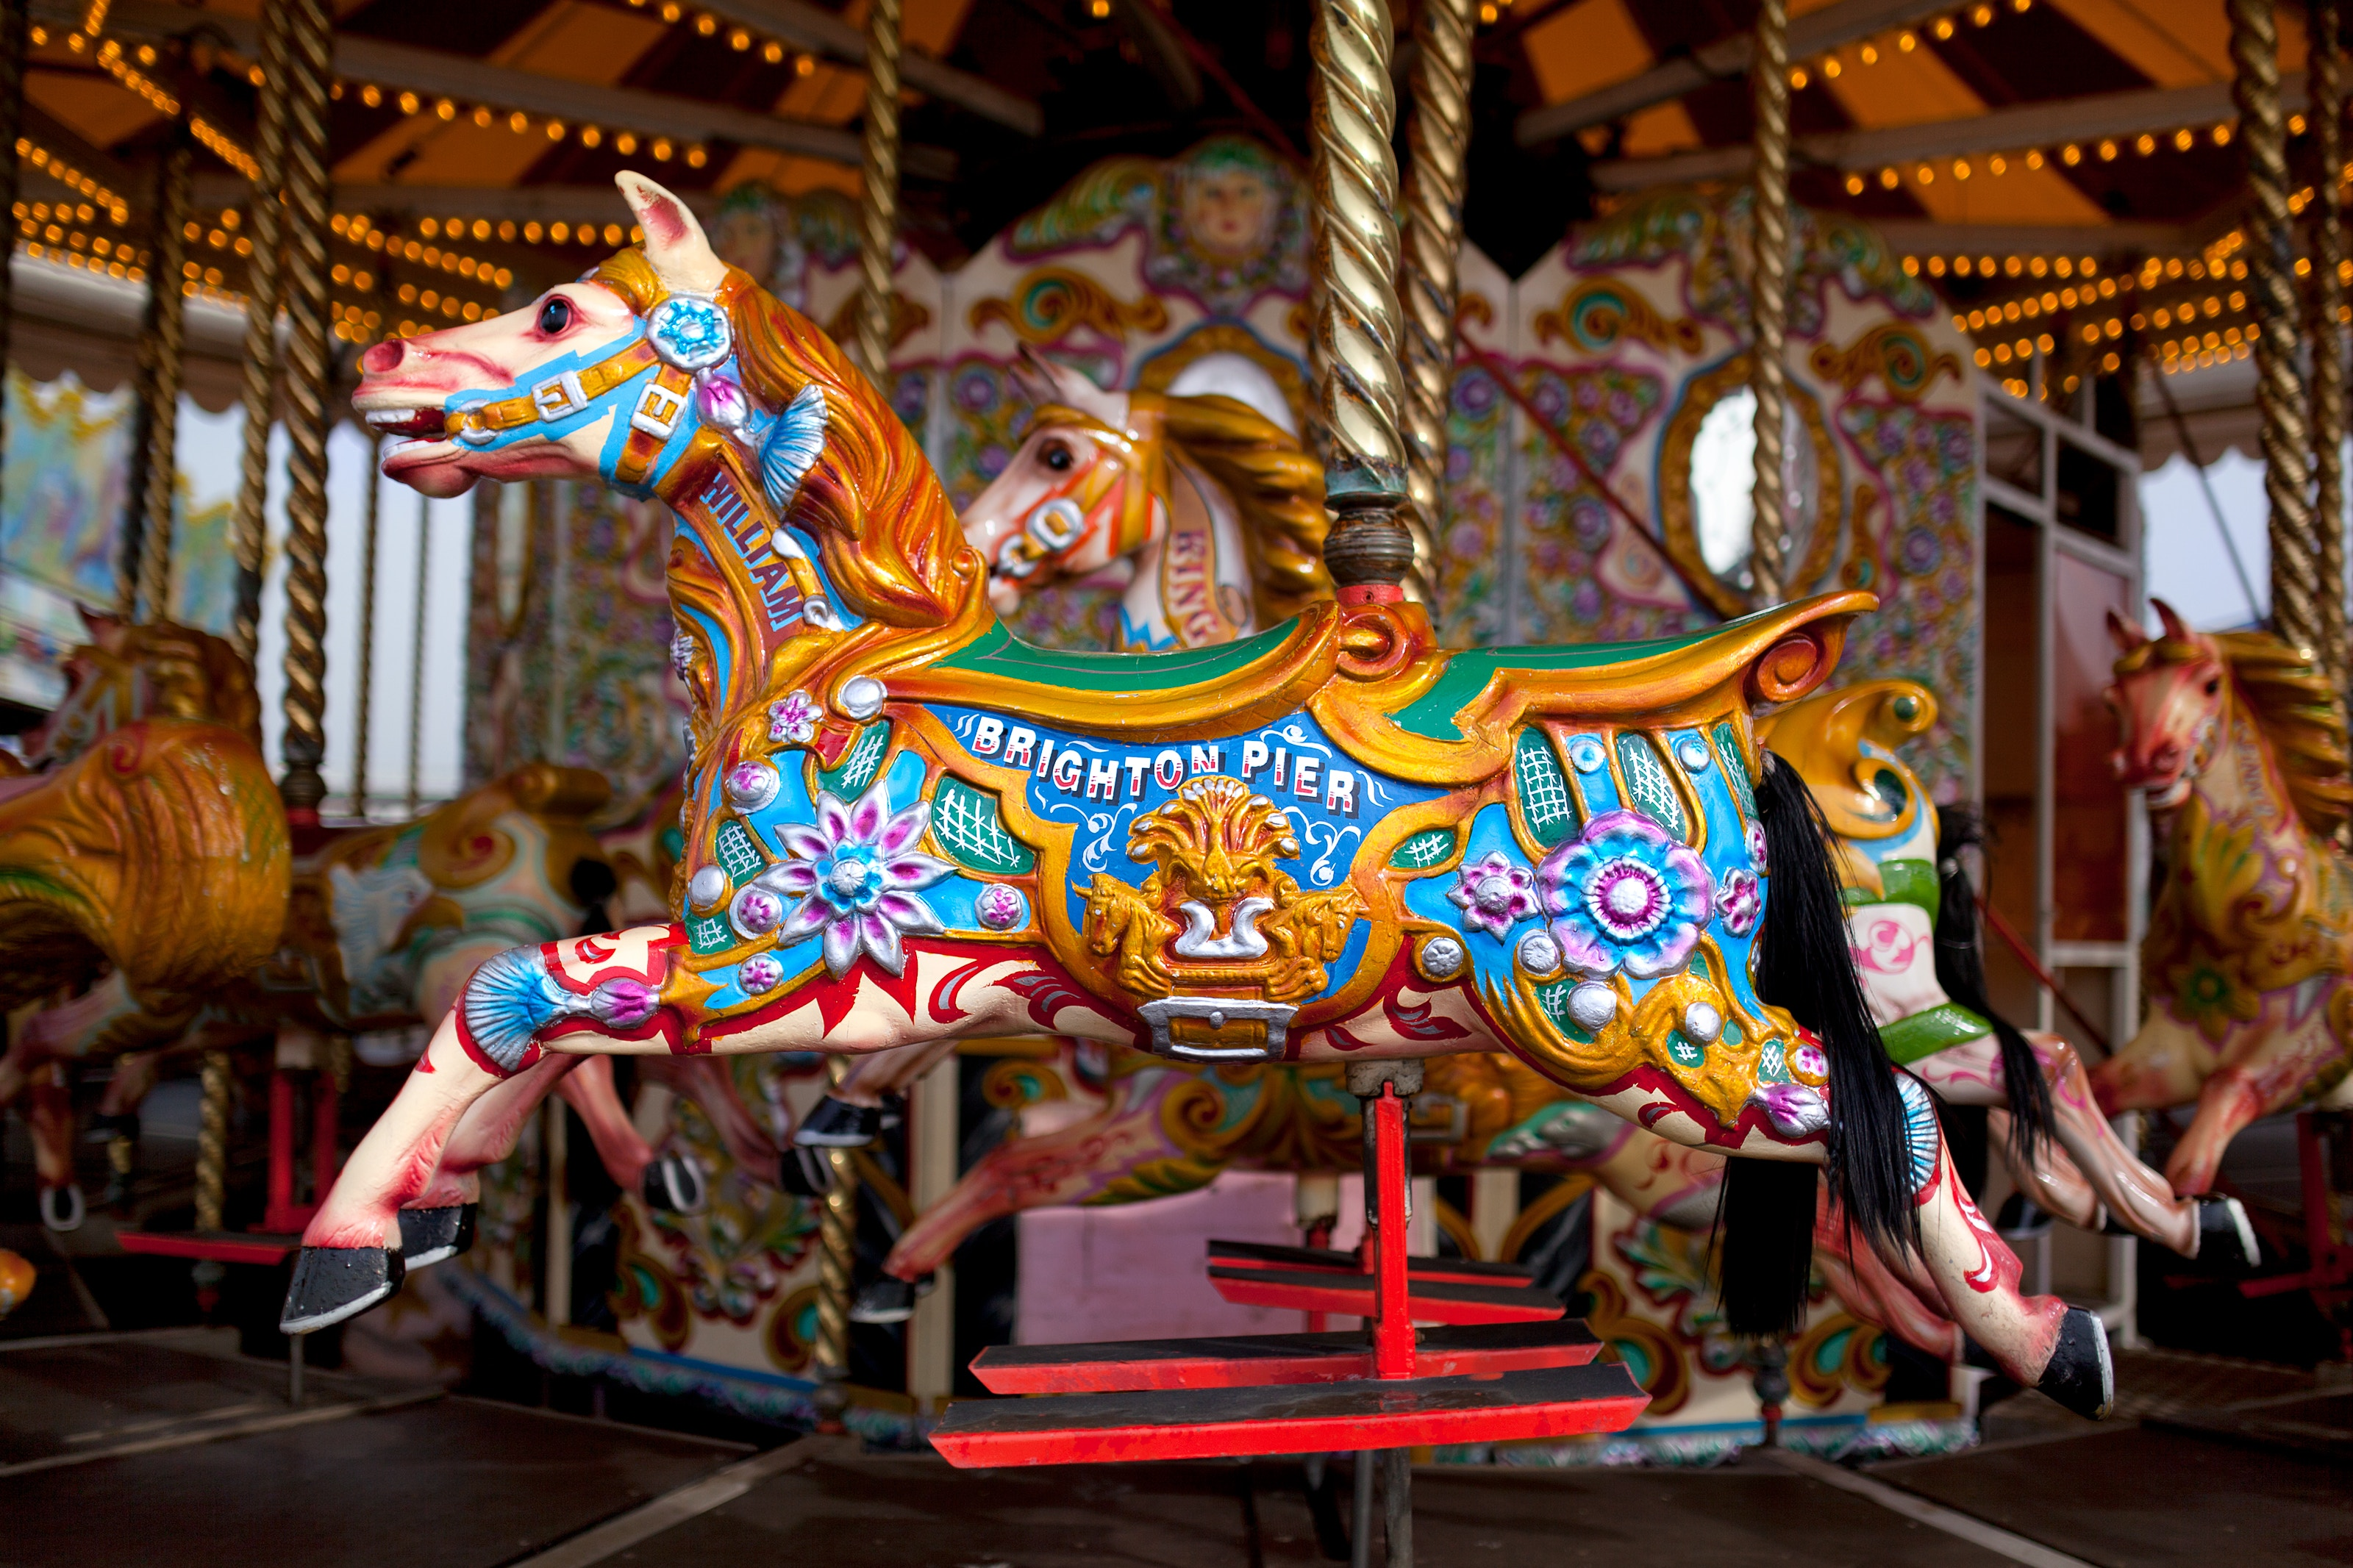 A merry-go-roung horse by Miles Storey on unsplash